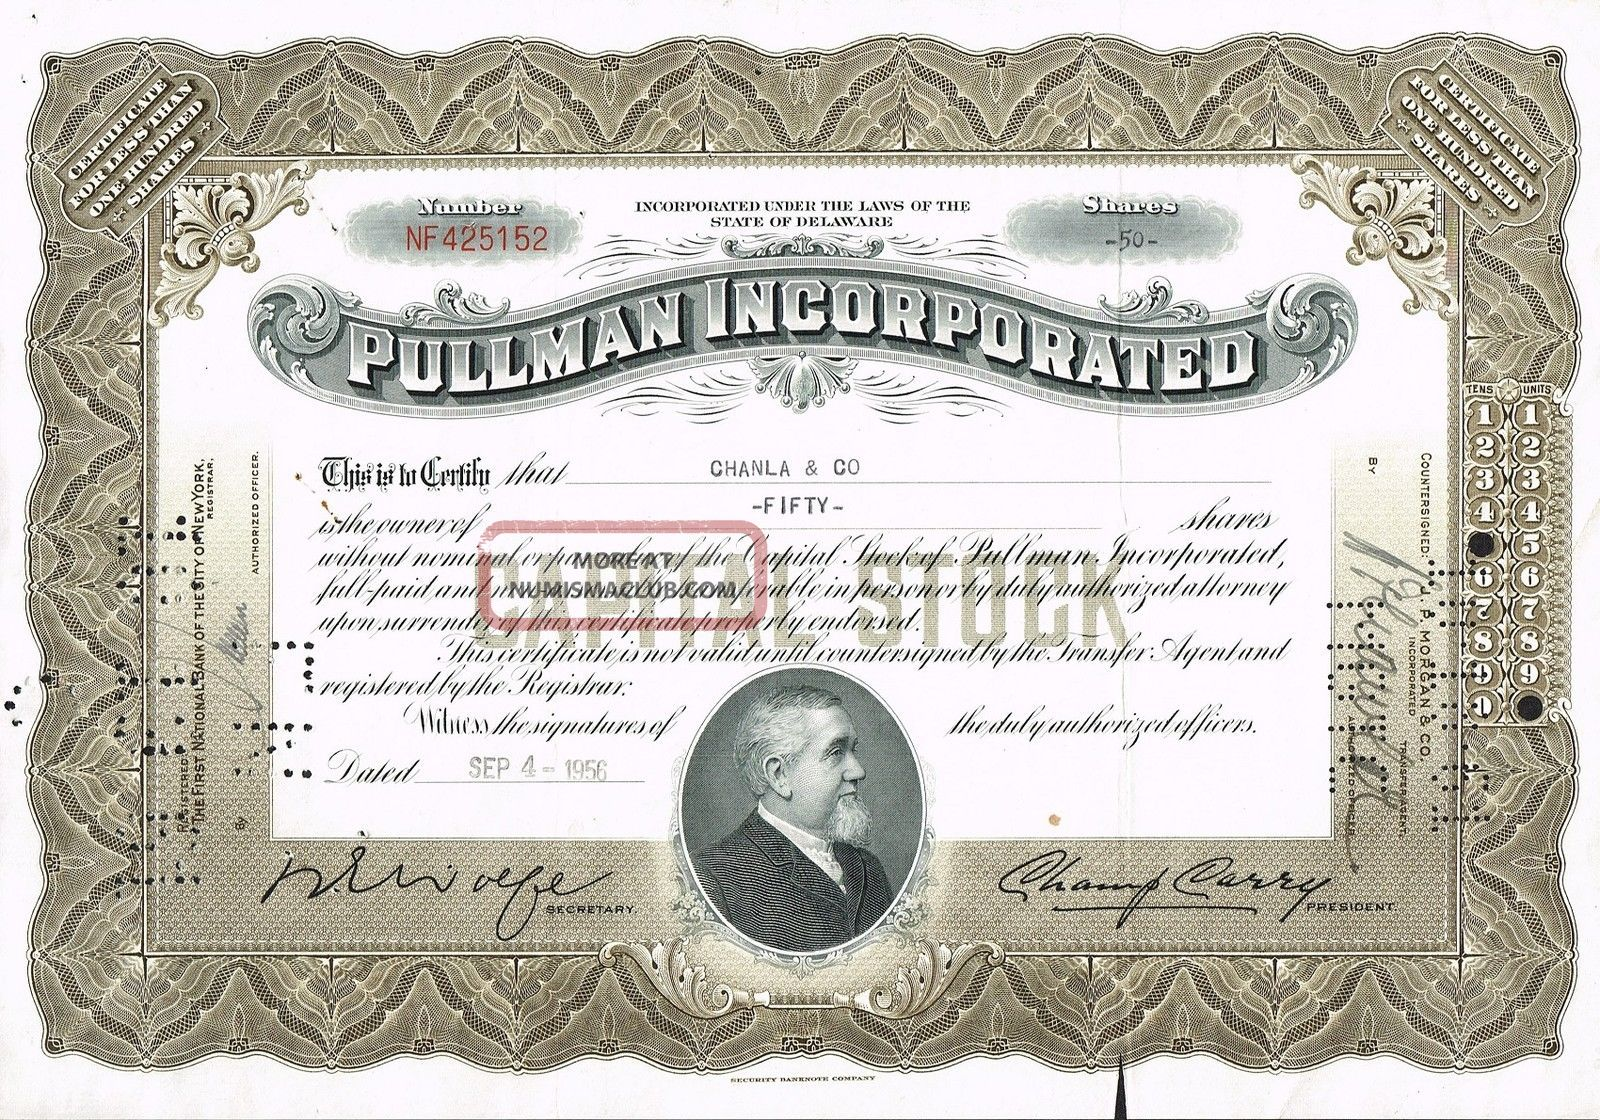 Usa Pullman Incorporated Stock Certificate World photo